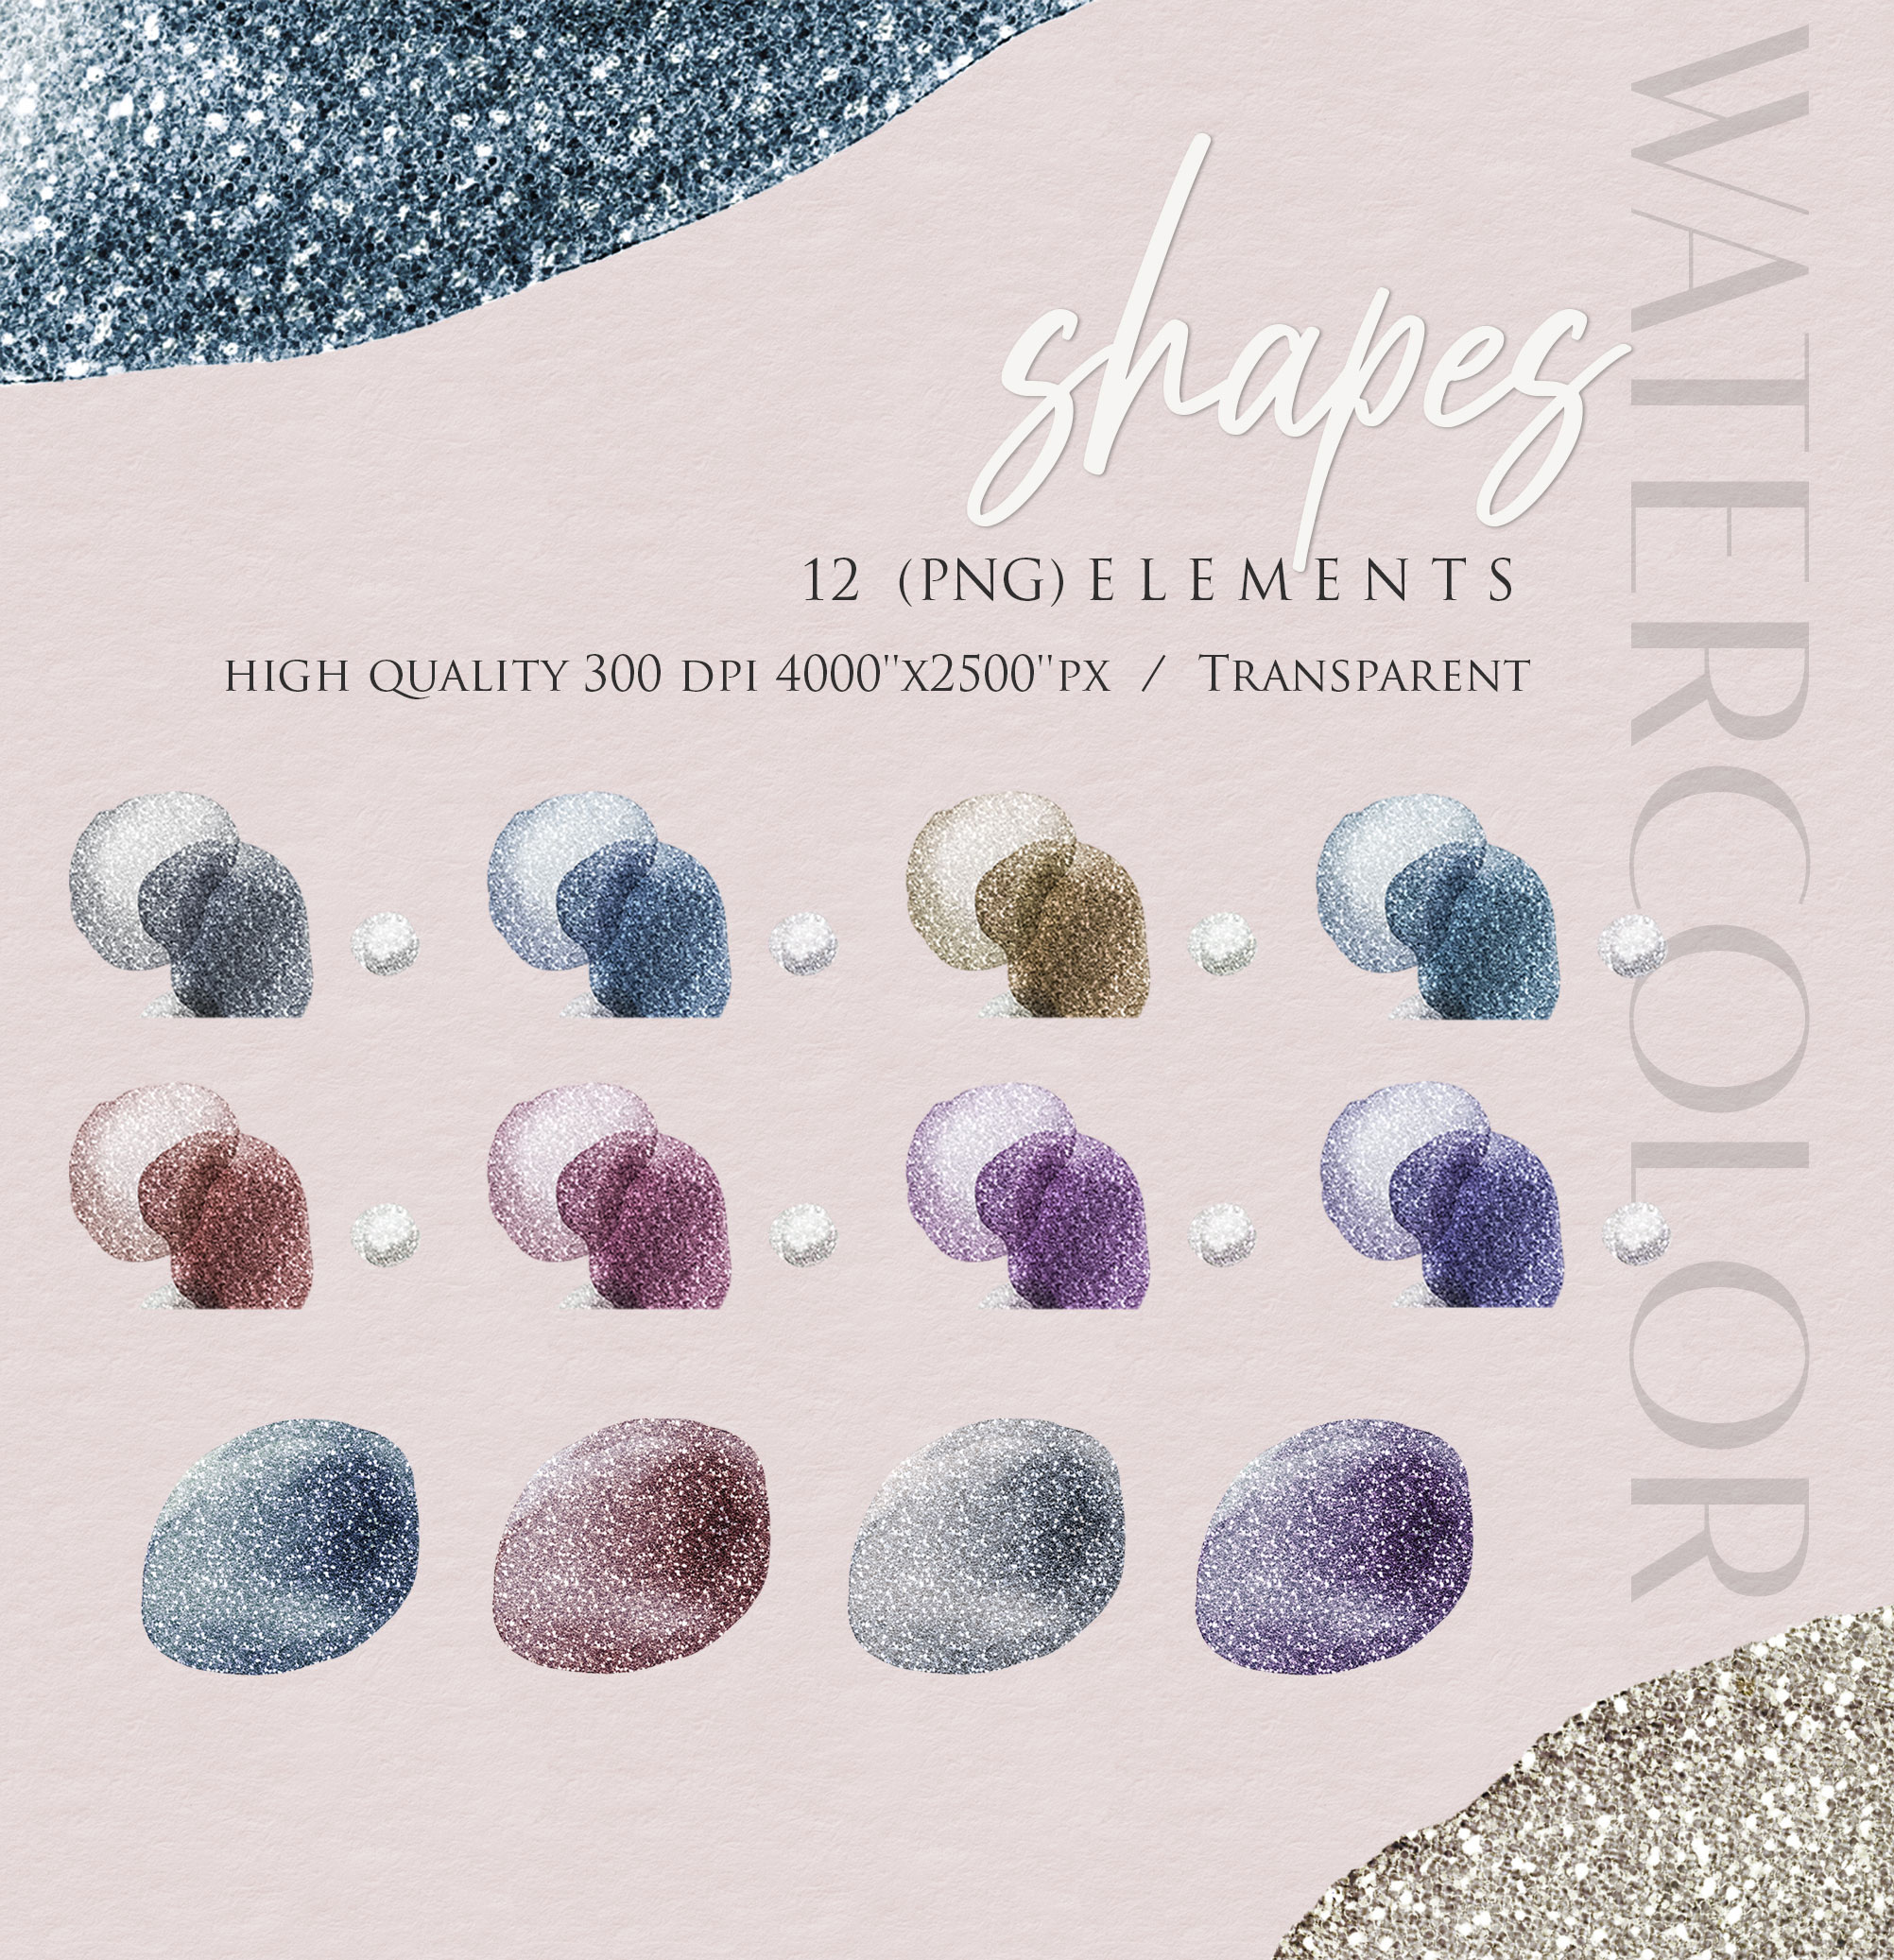 Ink & Watercolor Glitter Overlays - 12 Png Elements example image 2